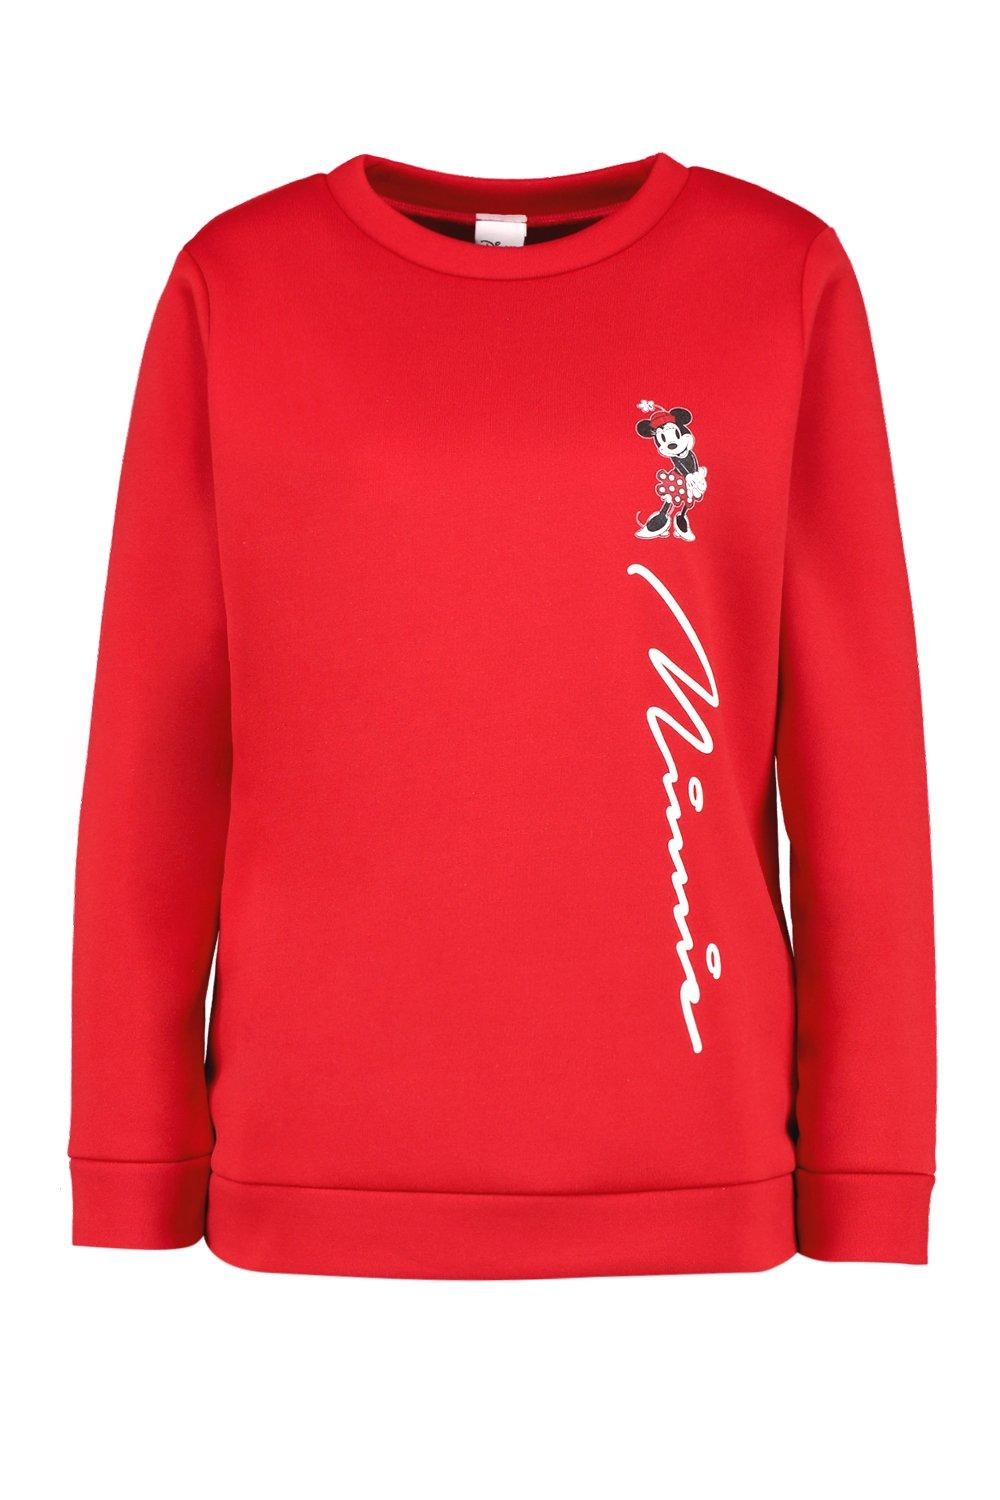 Disney Neck Sweater Crew red Minnie Script TRTqOz